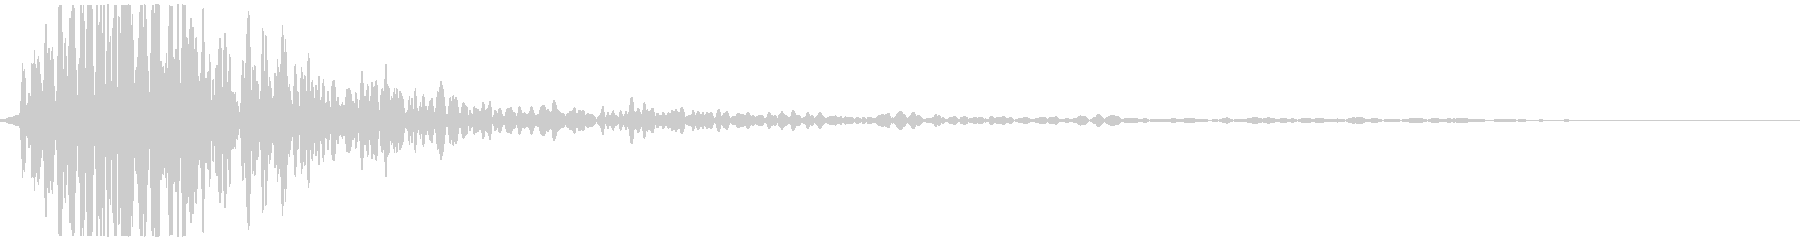 Dubba Baba (Sound with a Western Drawer Closed)'s unreproduced waveform